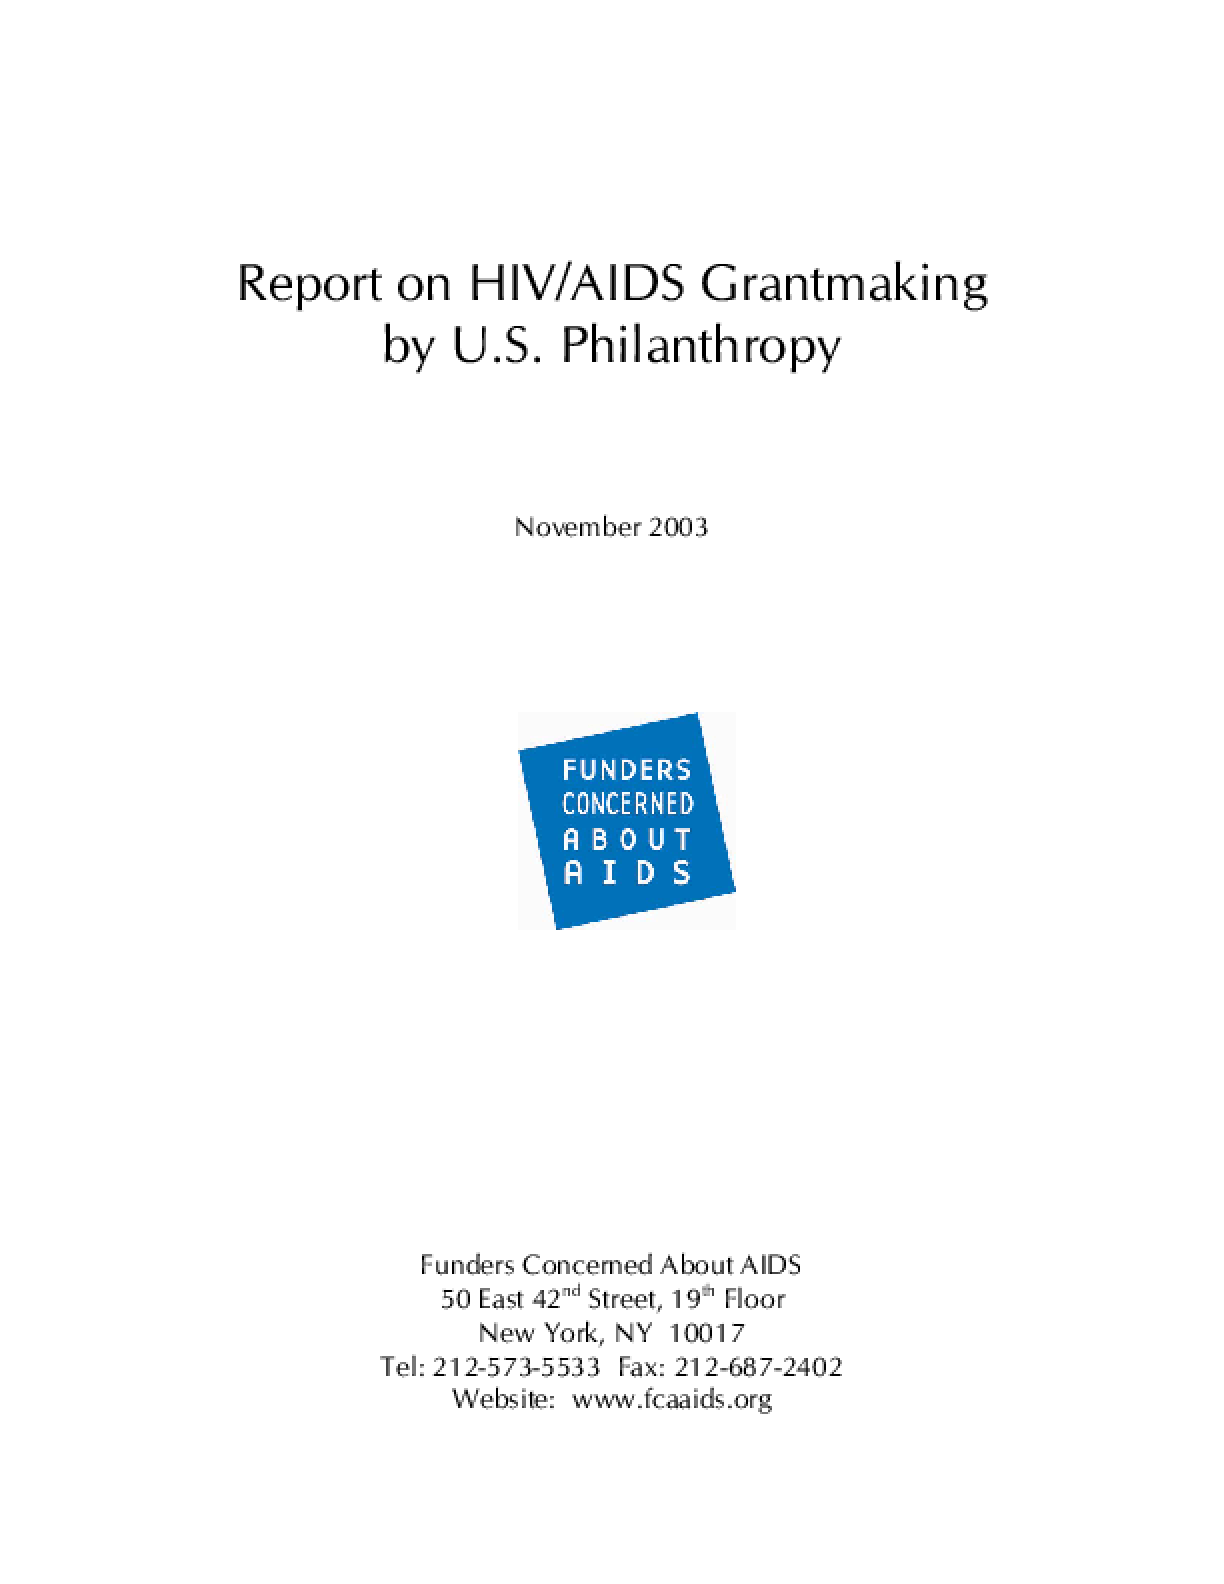 Report On HIV/AIDS Grantmaking By U.S. Philanthropy